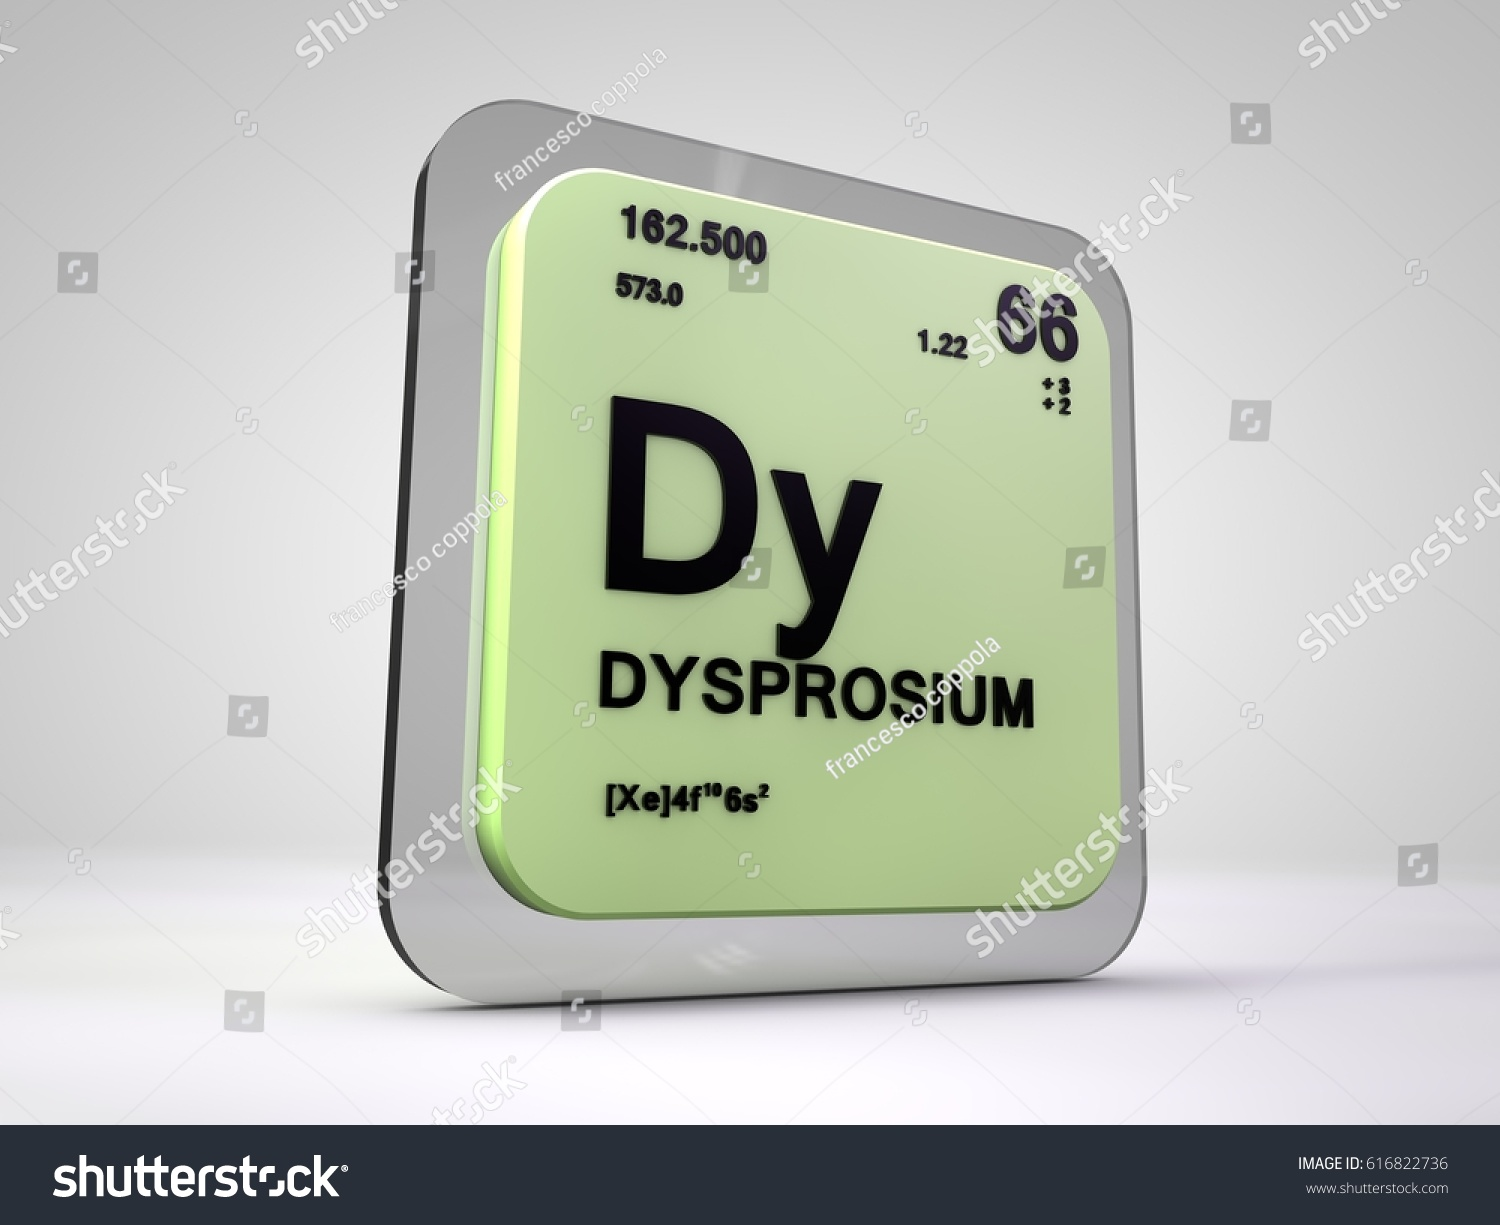 Dysprosium dy chemical element periodic table stock illustration dysprosium dy chemical element periodic table 3d render gamestrikefo Image collections